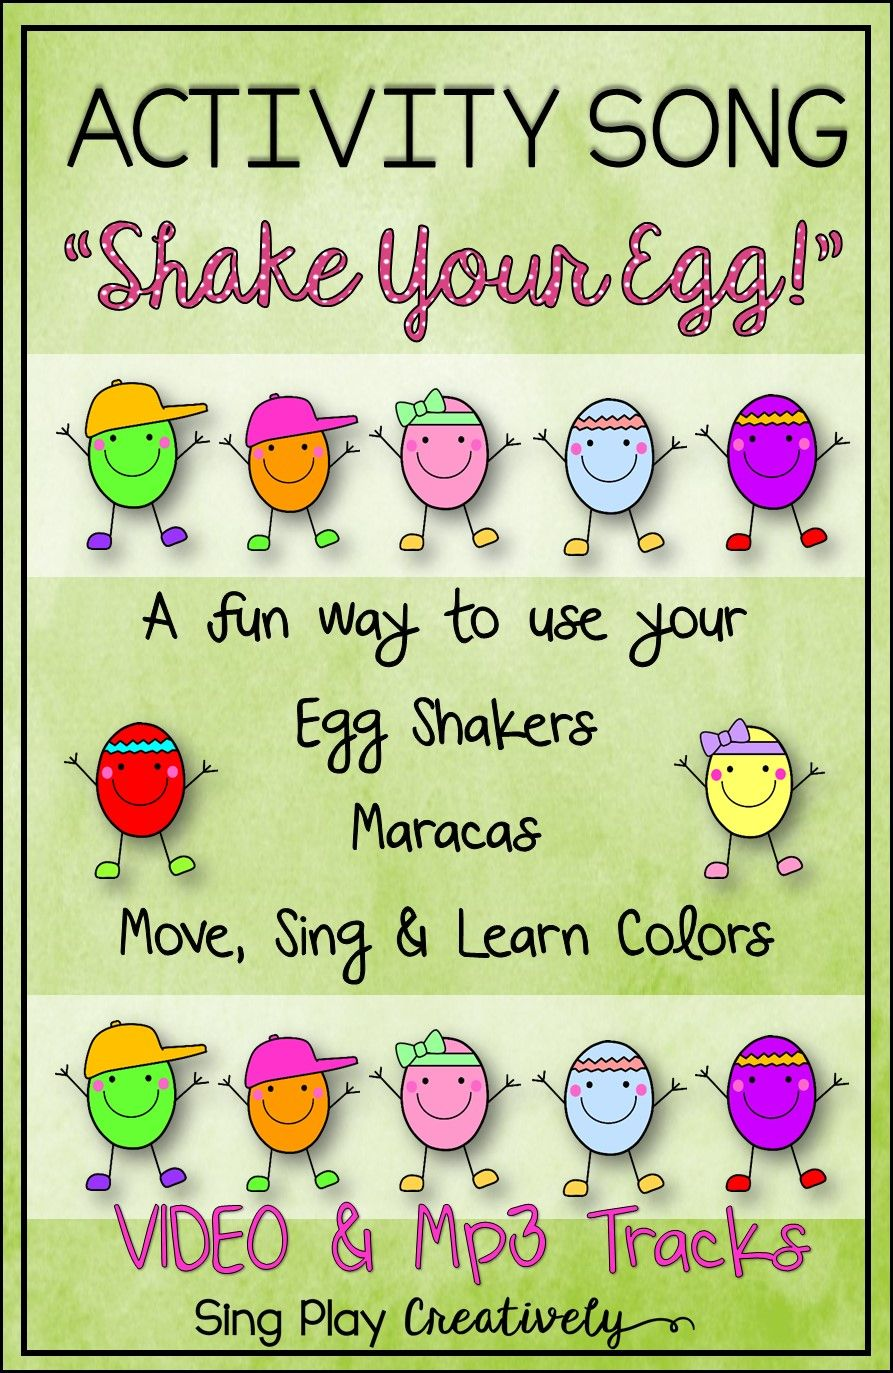 Egg shaker songs: I know a chicken, pig on my head | Interventions ...